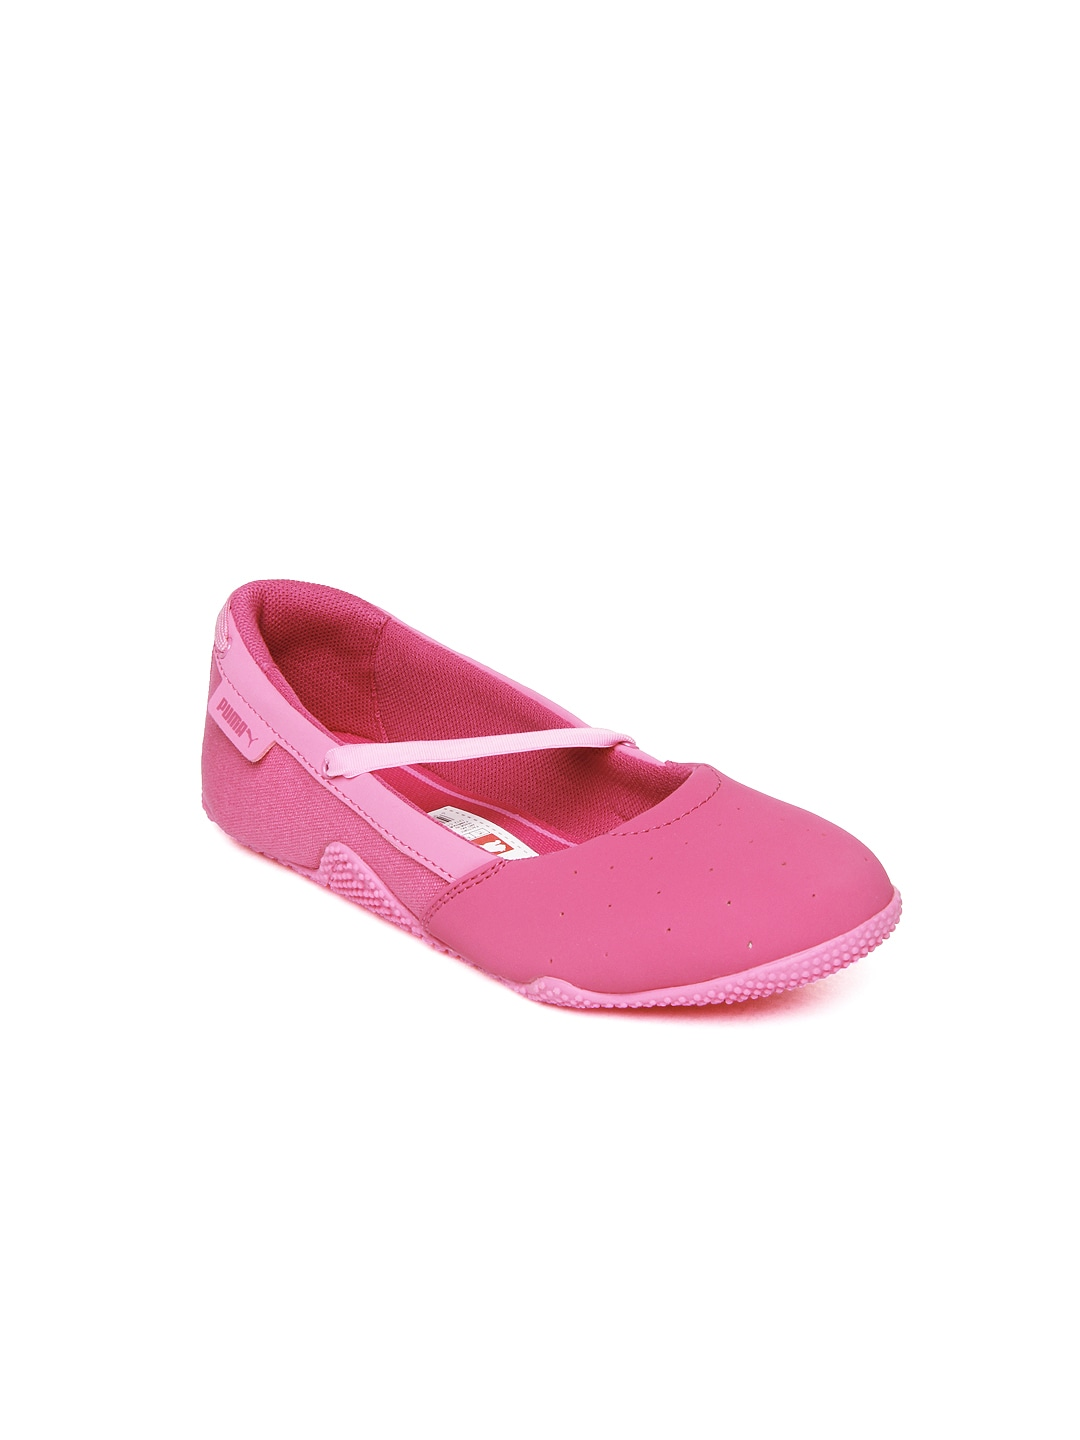 Buy puma ladies shoes with price - 54% OFF! Share discount 4d517d7ae6